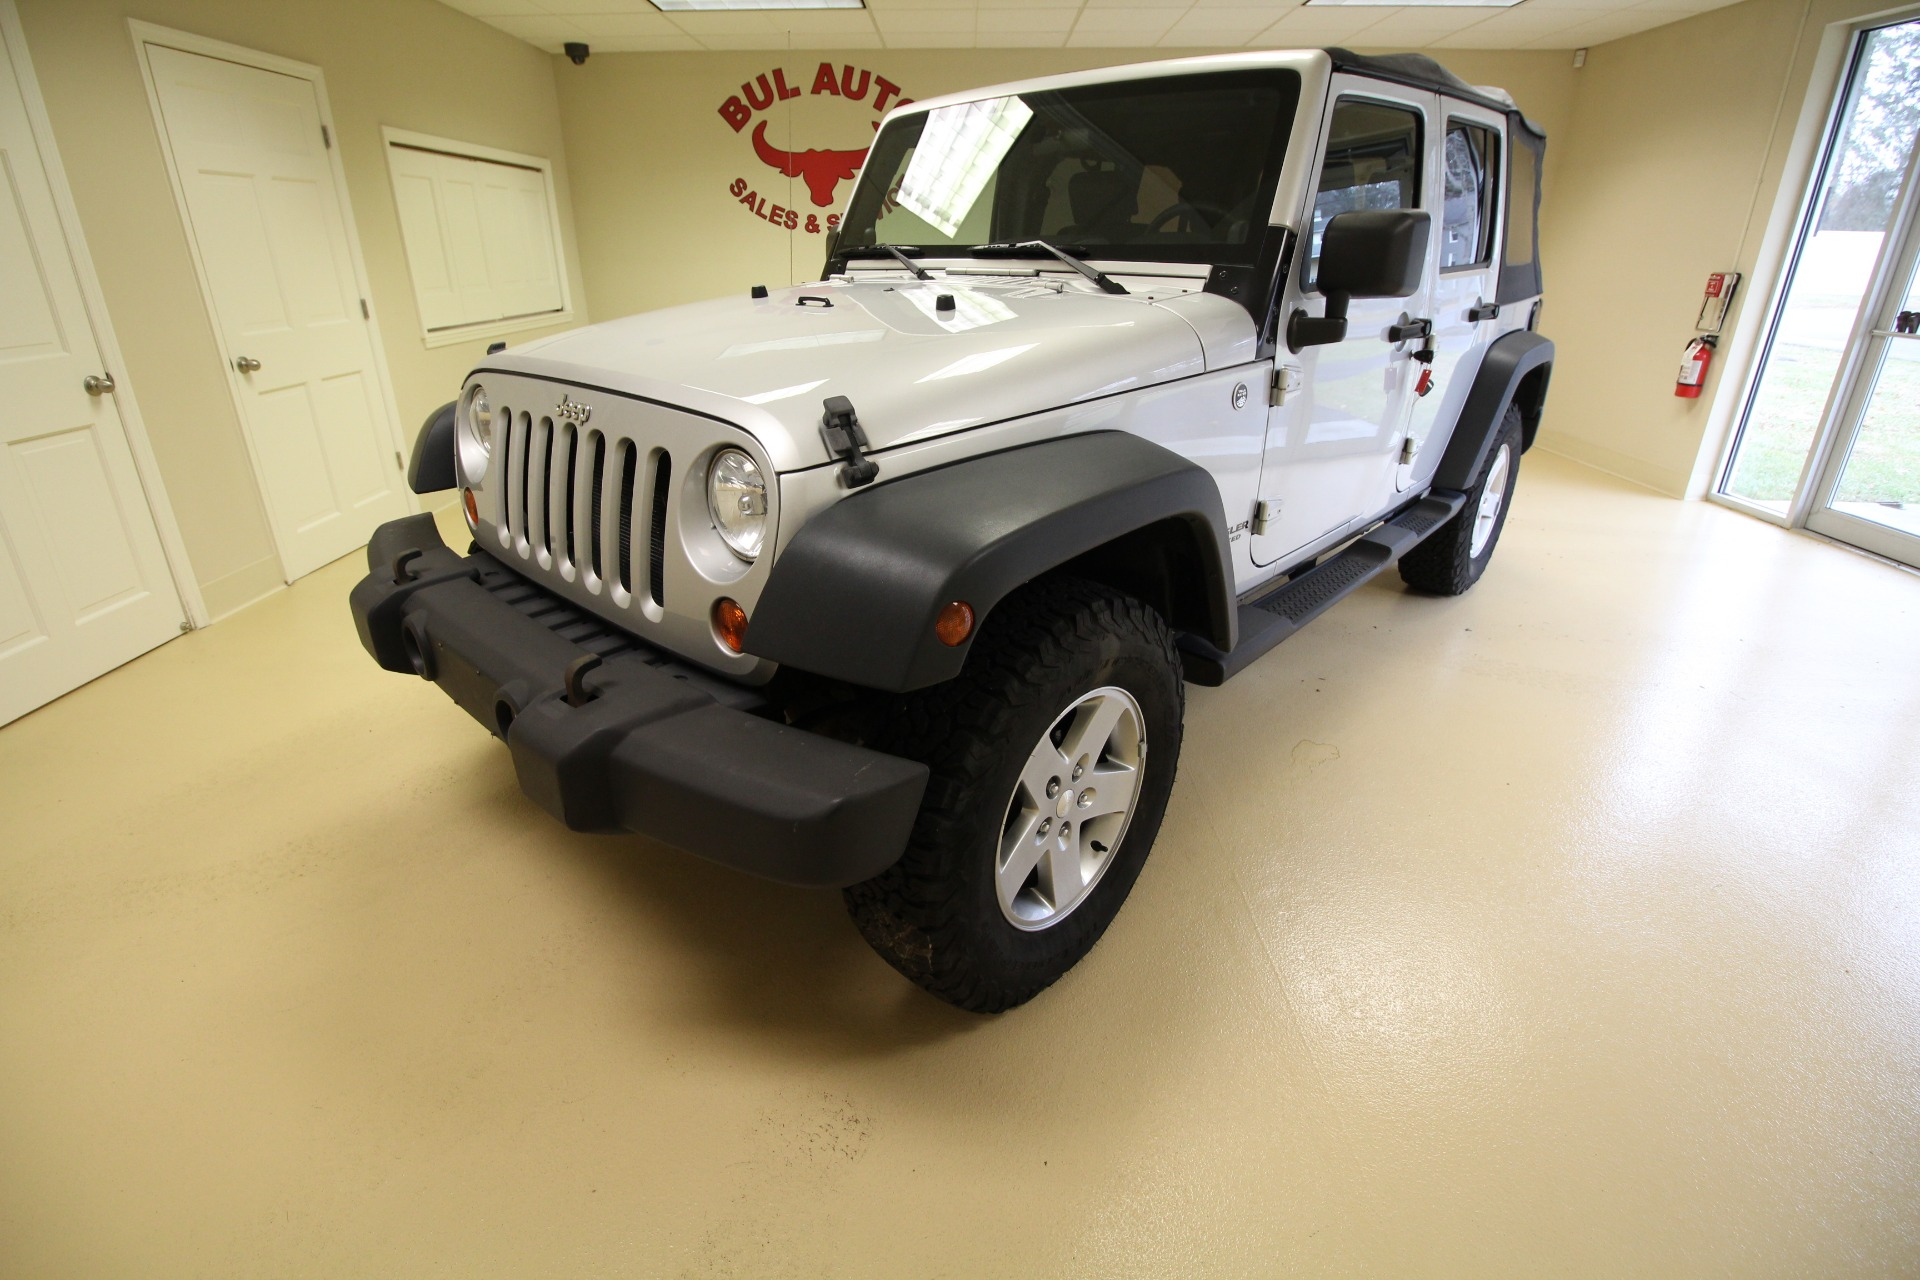 2010 jeep wrangler unlimited sport 4wd stock 18254 for sale near albany ny ny jeep dealer. Black Bedroom Furniture Sets. Home Design Ideas